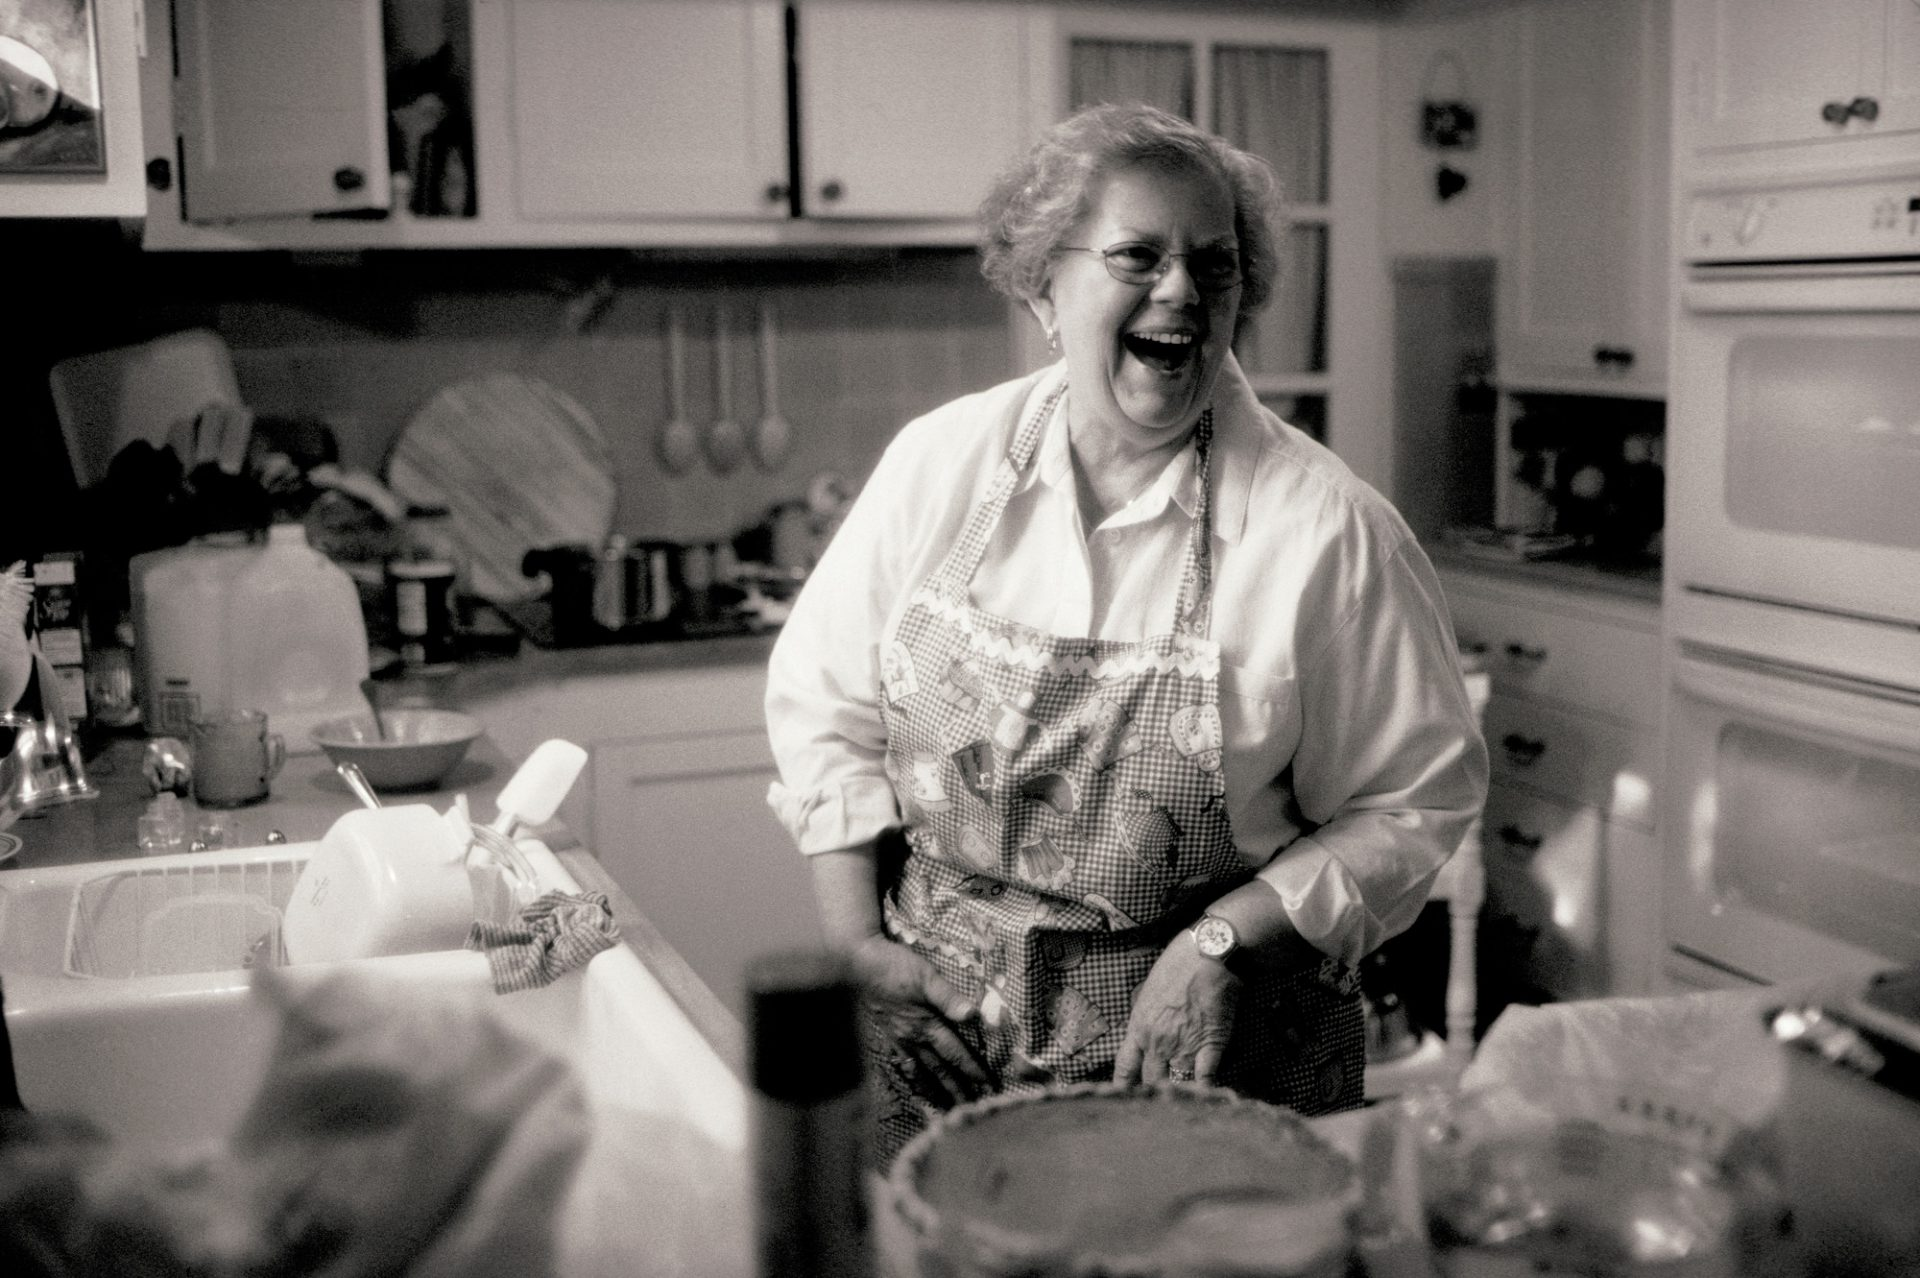 Photo: A woman works in a kitchen after a holiday meal in Lincoln, Nebraska.